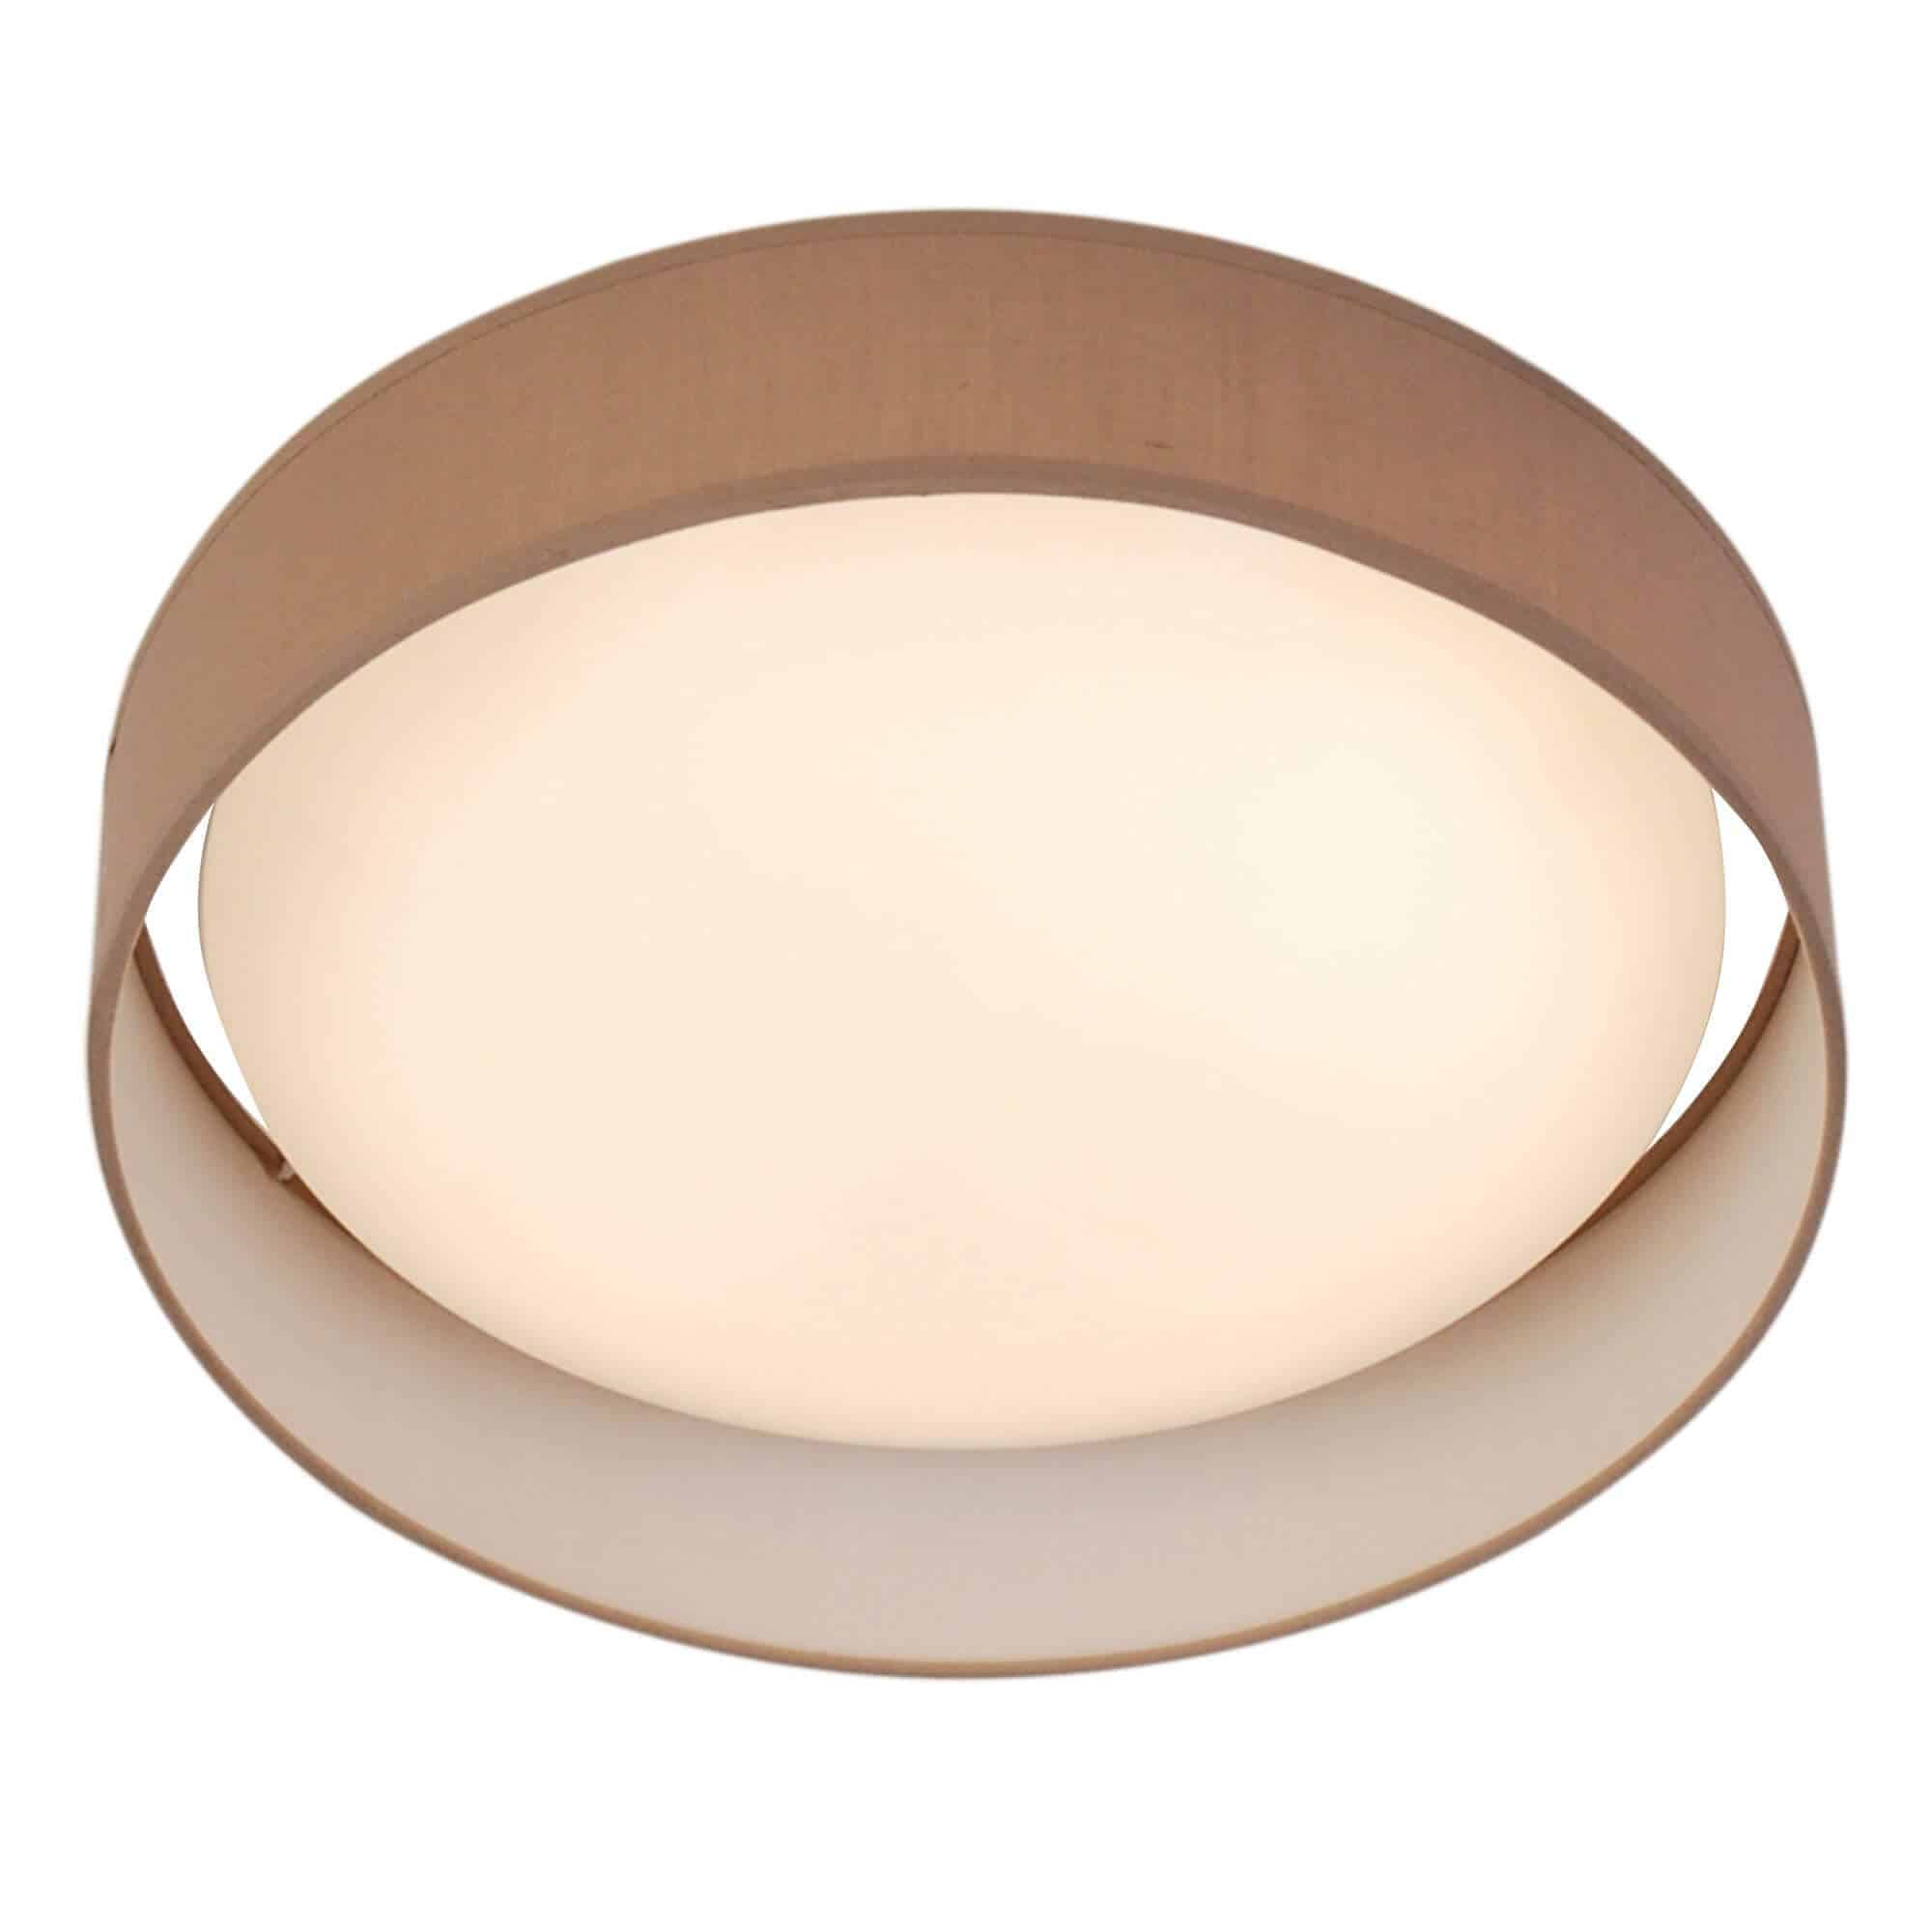 9371-37BR – Searchlight Gianna Brown 1 Light LED Flush Ceiling Light